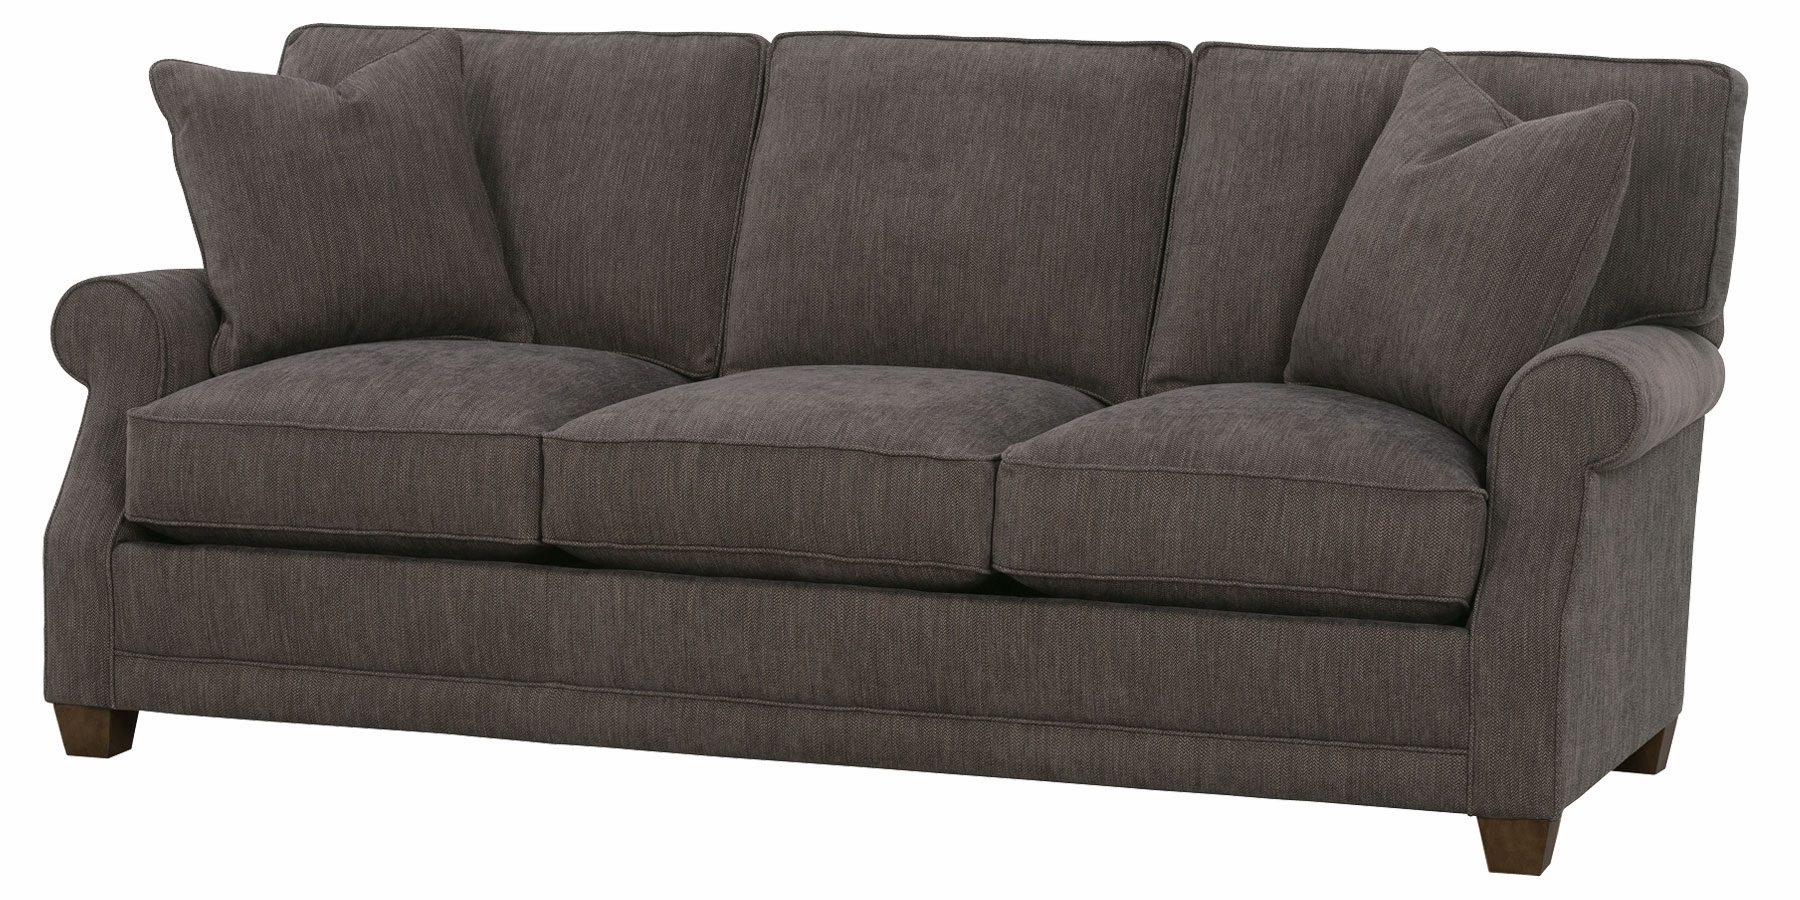 Sectional Sofas In Charlotte Nc In 2018 Good Sleeper Sofa Charlotte Nc 32 For Sectional Sofas With Sleeper (View 17 of 20)